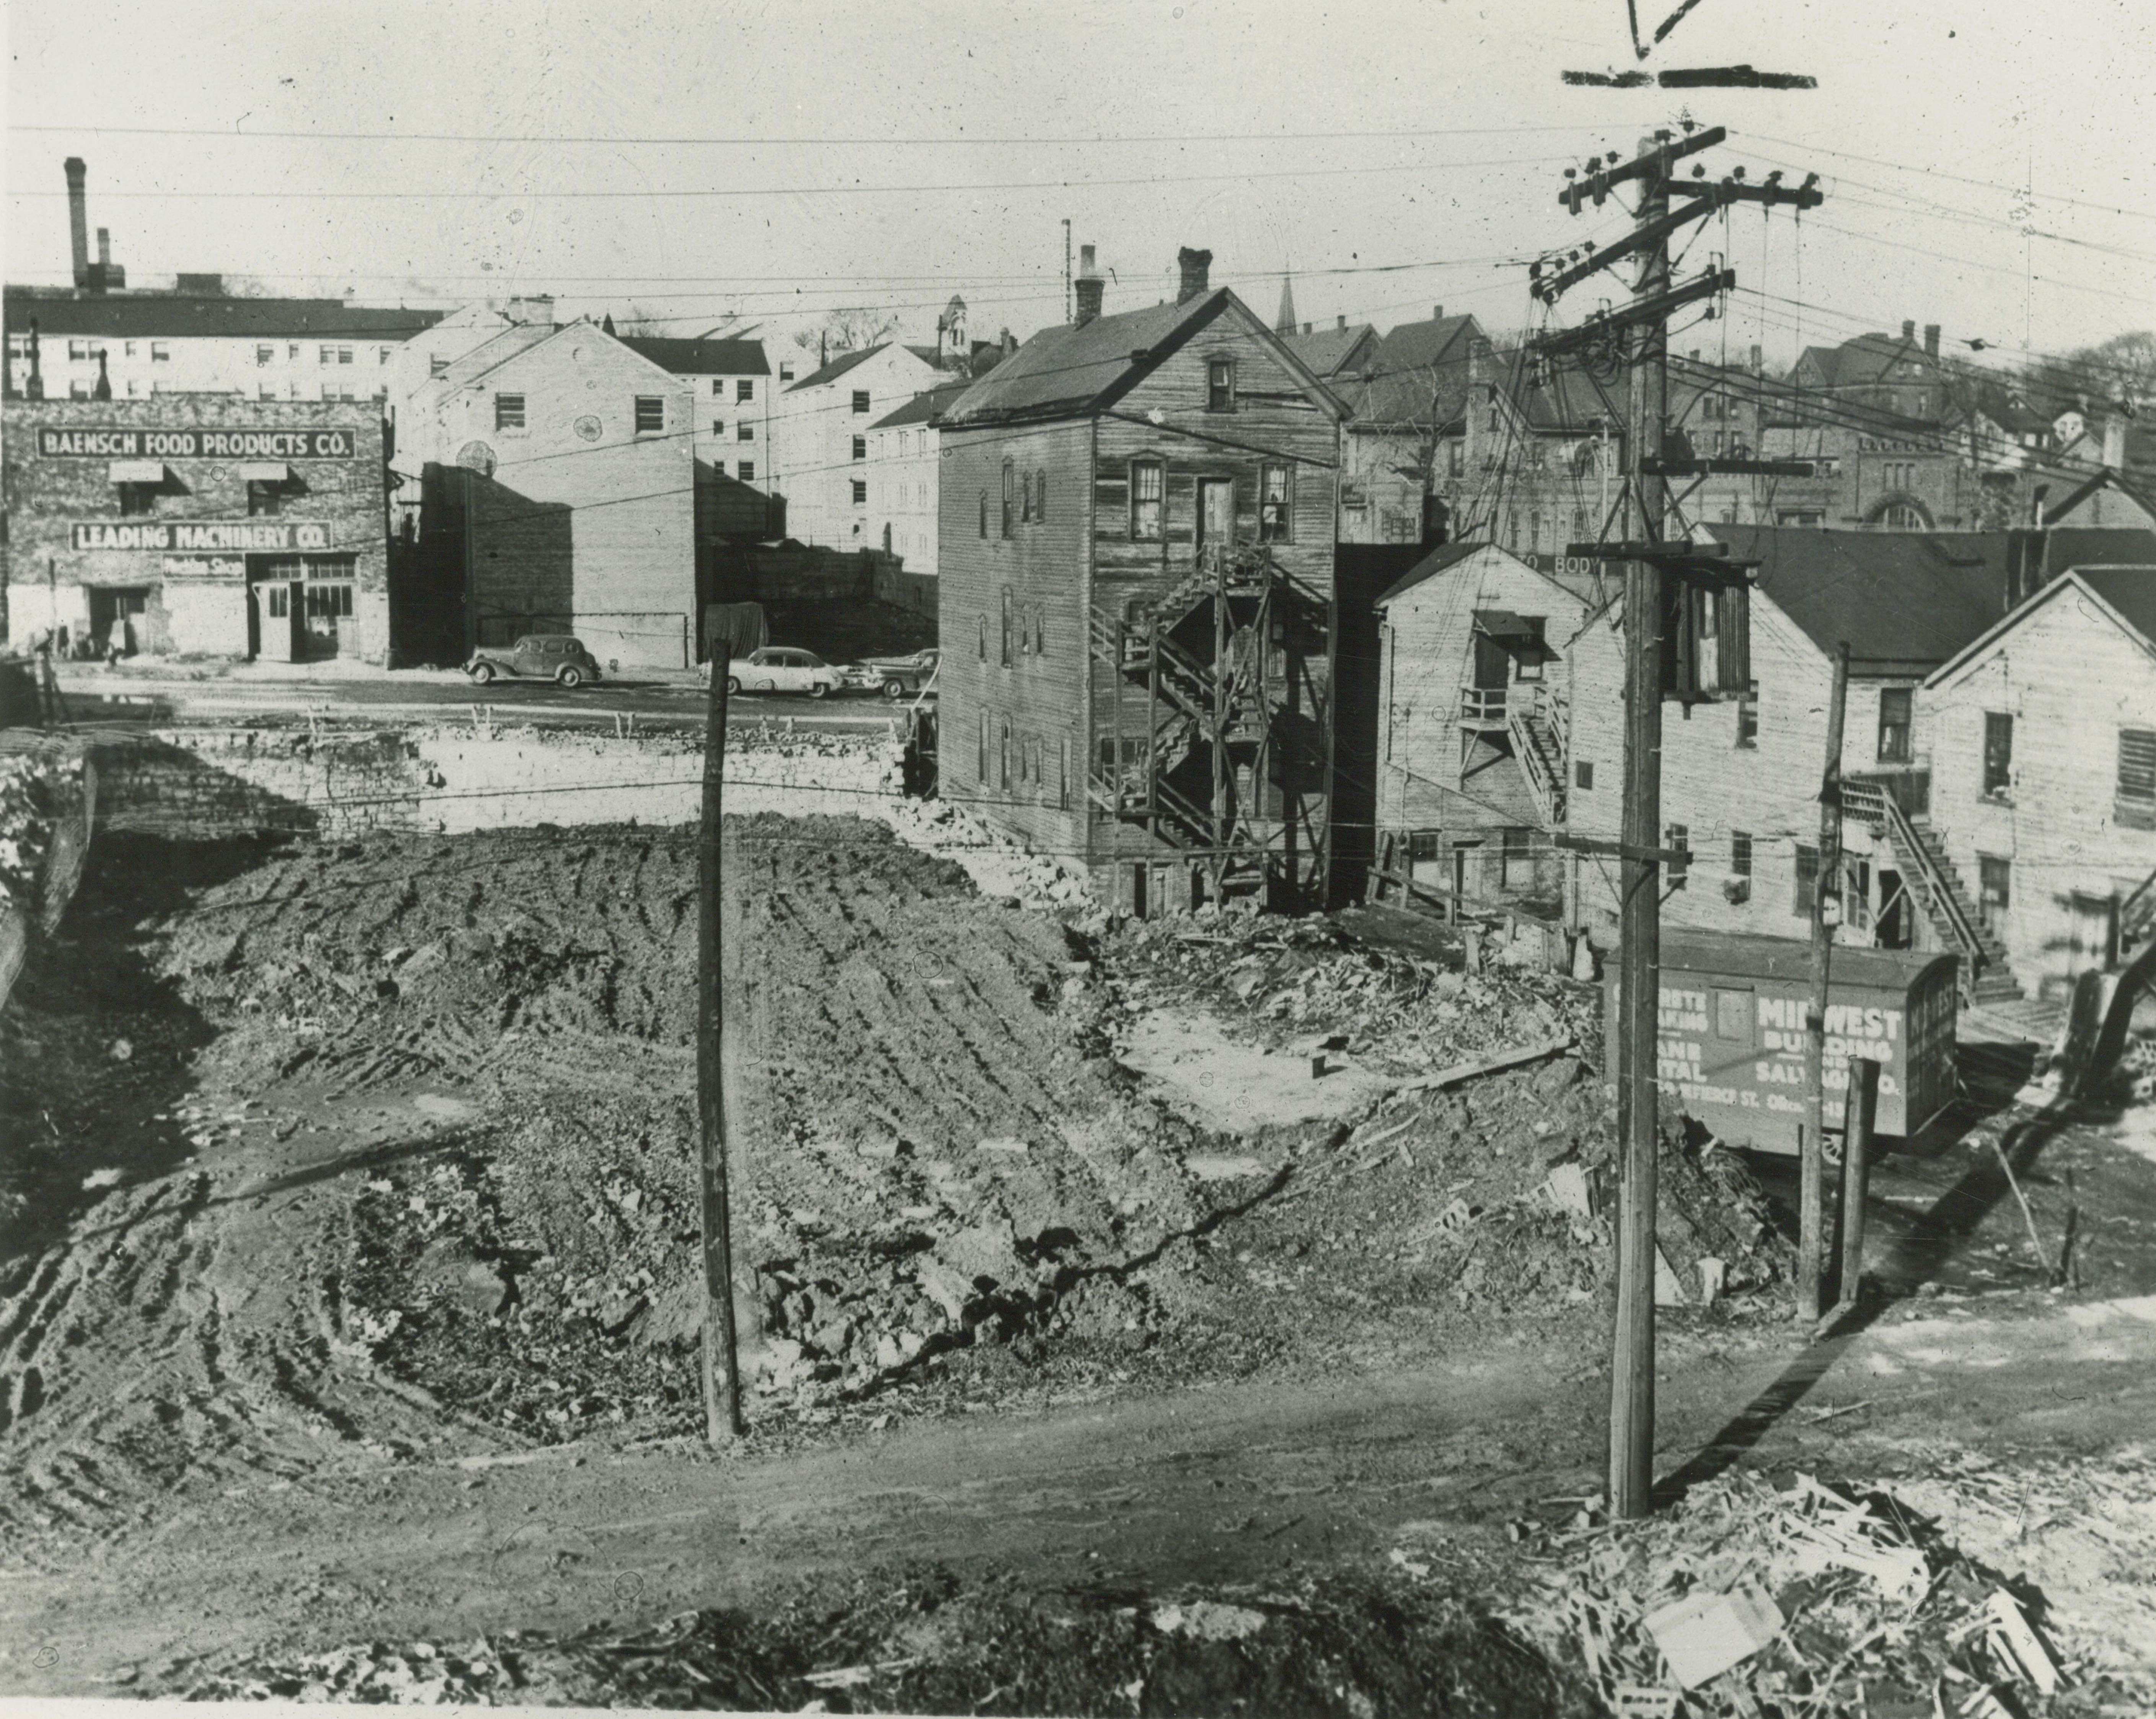 <table class=&quot;lightbox&quot;><tr><td colspan=2 class=&quot;lightbox-title&quot;>Housing Demolition on Fond du Lac Avenue</td></tr><tr><td colspan=2 class=&quot;lightbox-caption&quot;>Photograph of an demolished lot and other housing structures on W. Fond Du Lac Avenue that were eventually torn down and replaced by the Hillside Housing Development.</td></tr><tr><td colspan=2 class=&quot;lightbox-spacer&quot;></td></tr><tr class=&quot;lightbox-detail&quot;><td class=&quot;cell-title&quot;>Source: </td><td class=&quot;cell-value&quot;>From the Historic Photo Collection of the Milwaukee Public Library. Reprinted with permission.<br /><a href=&quot;http://content.mpl.org/cdm/singleitem/collection/HstoricPho/id/5202/rec/16&quot; target=&quot;_blank&quot;>Milwaukee Public Library</a></td></tr><tr class=&quot;filler-row&quot;><td colspan=2>&nbsp;</td></tr></table>